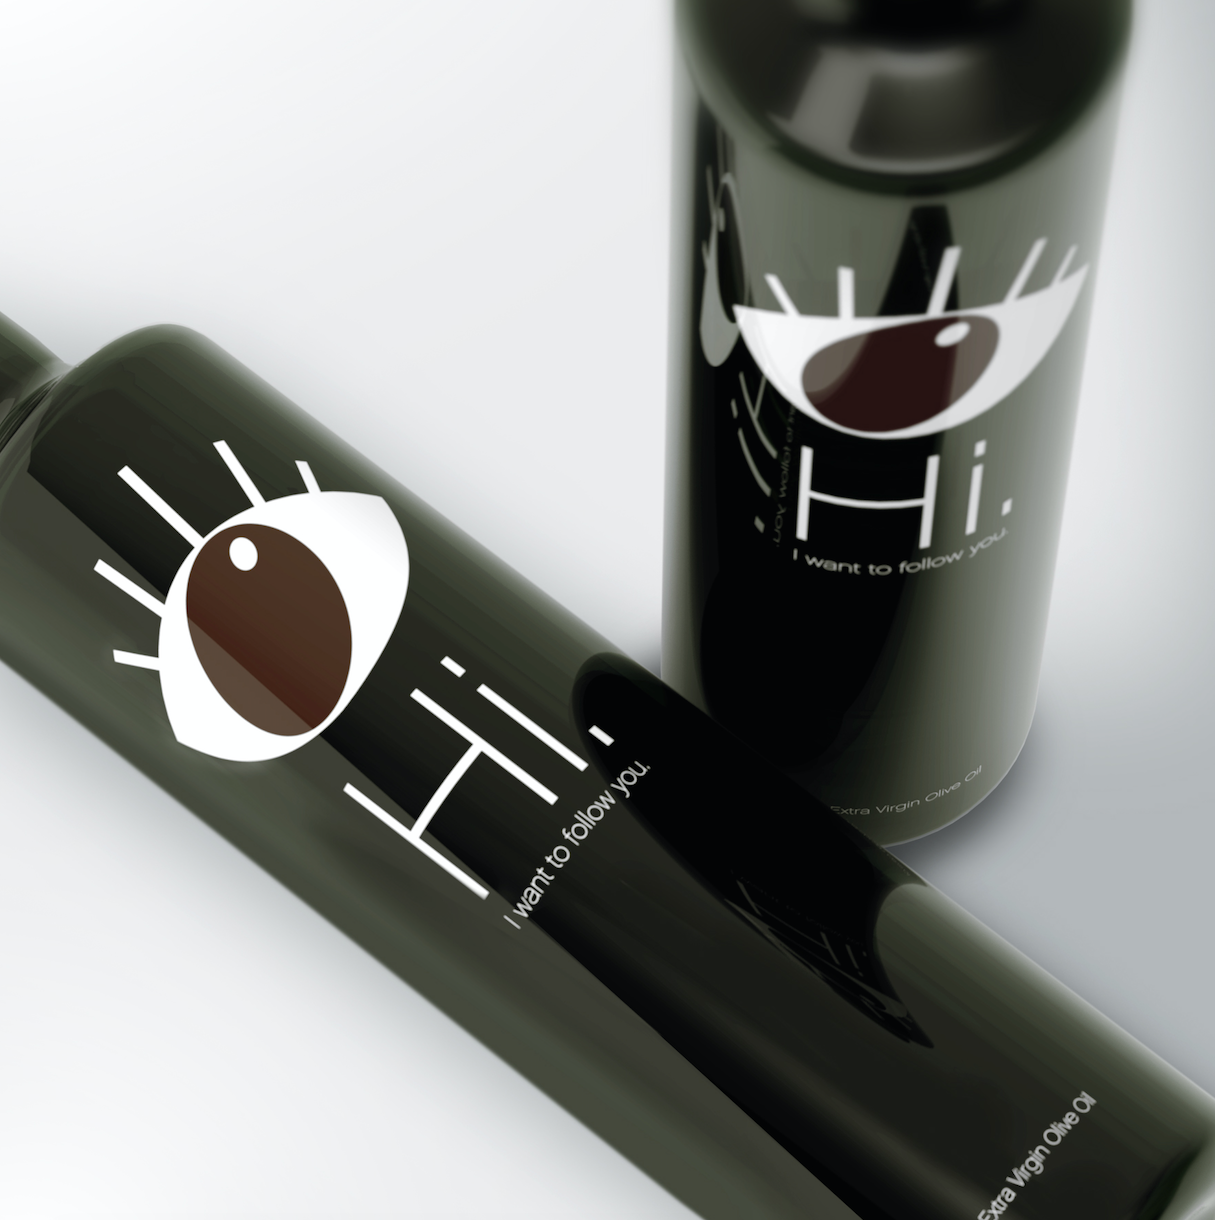 Two bottles of Enios Olive Oil as an example of successful product packaging design